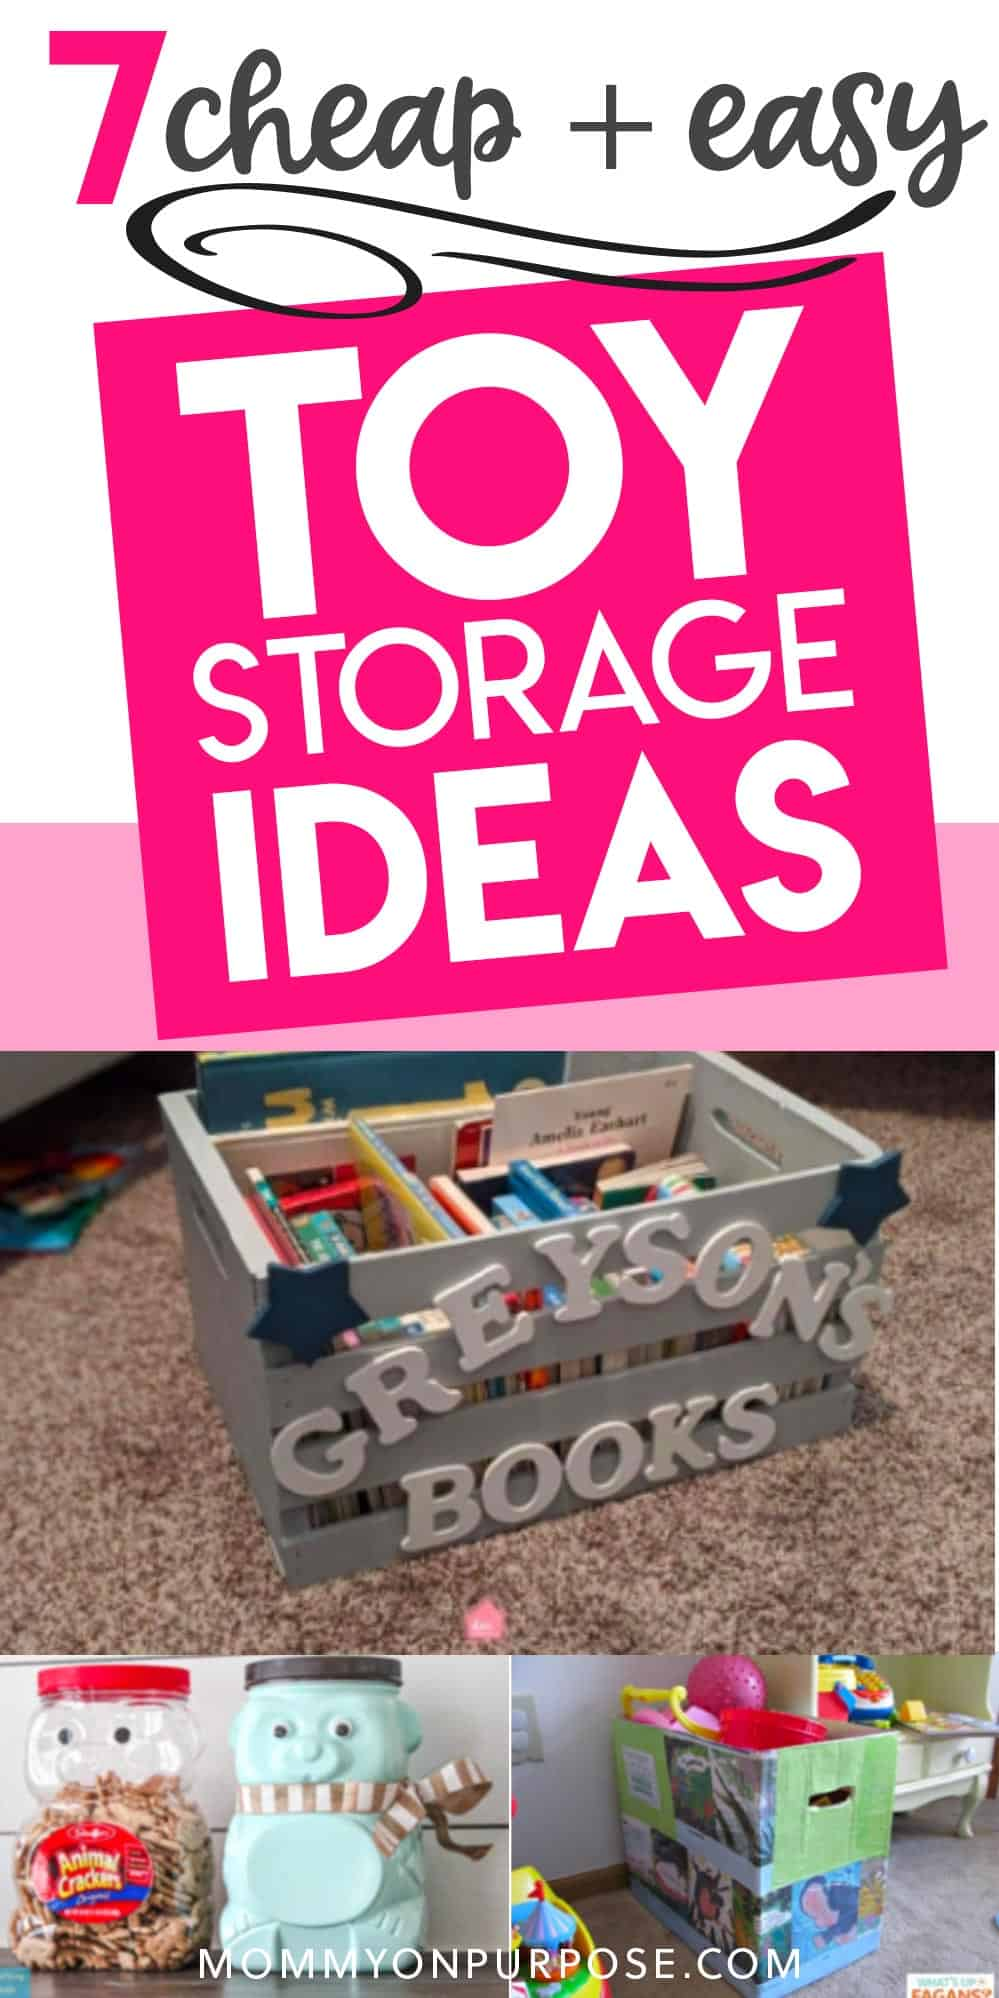 7 cheap and easy toy storage ideas pinterest pin